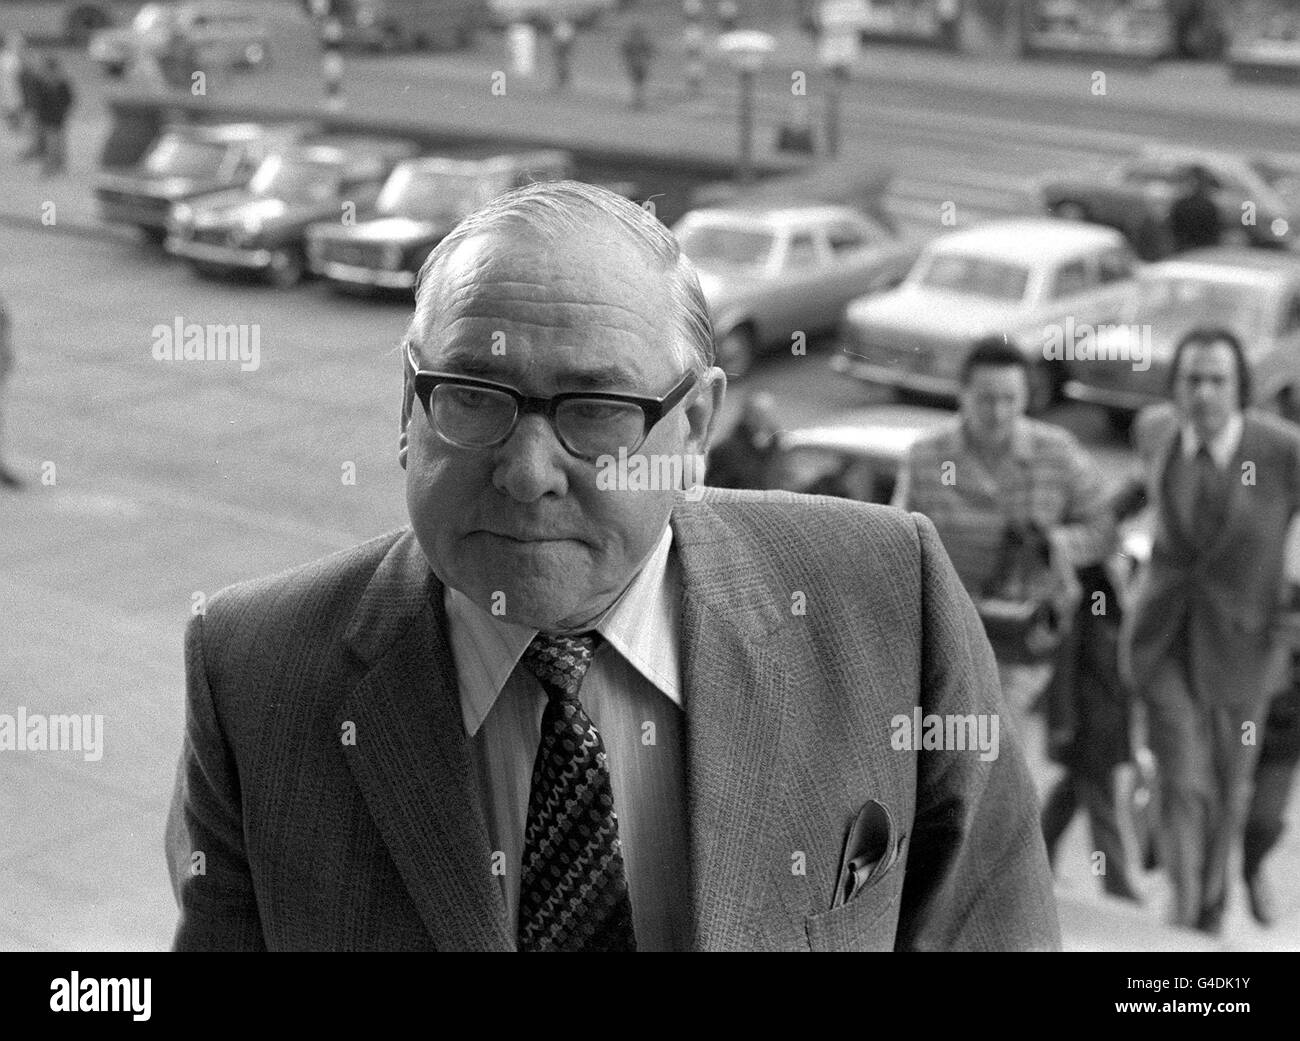 PA NEWS PHOTO 24/4/74  MR. ANDREW CUNNINGHAM OF CHESTER-LE STREET  CO. DURHAM ARRIVING AT LEEDS CROWN COURT WHERE - Stock Image